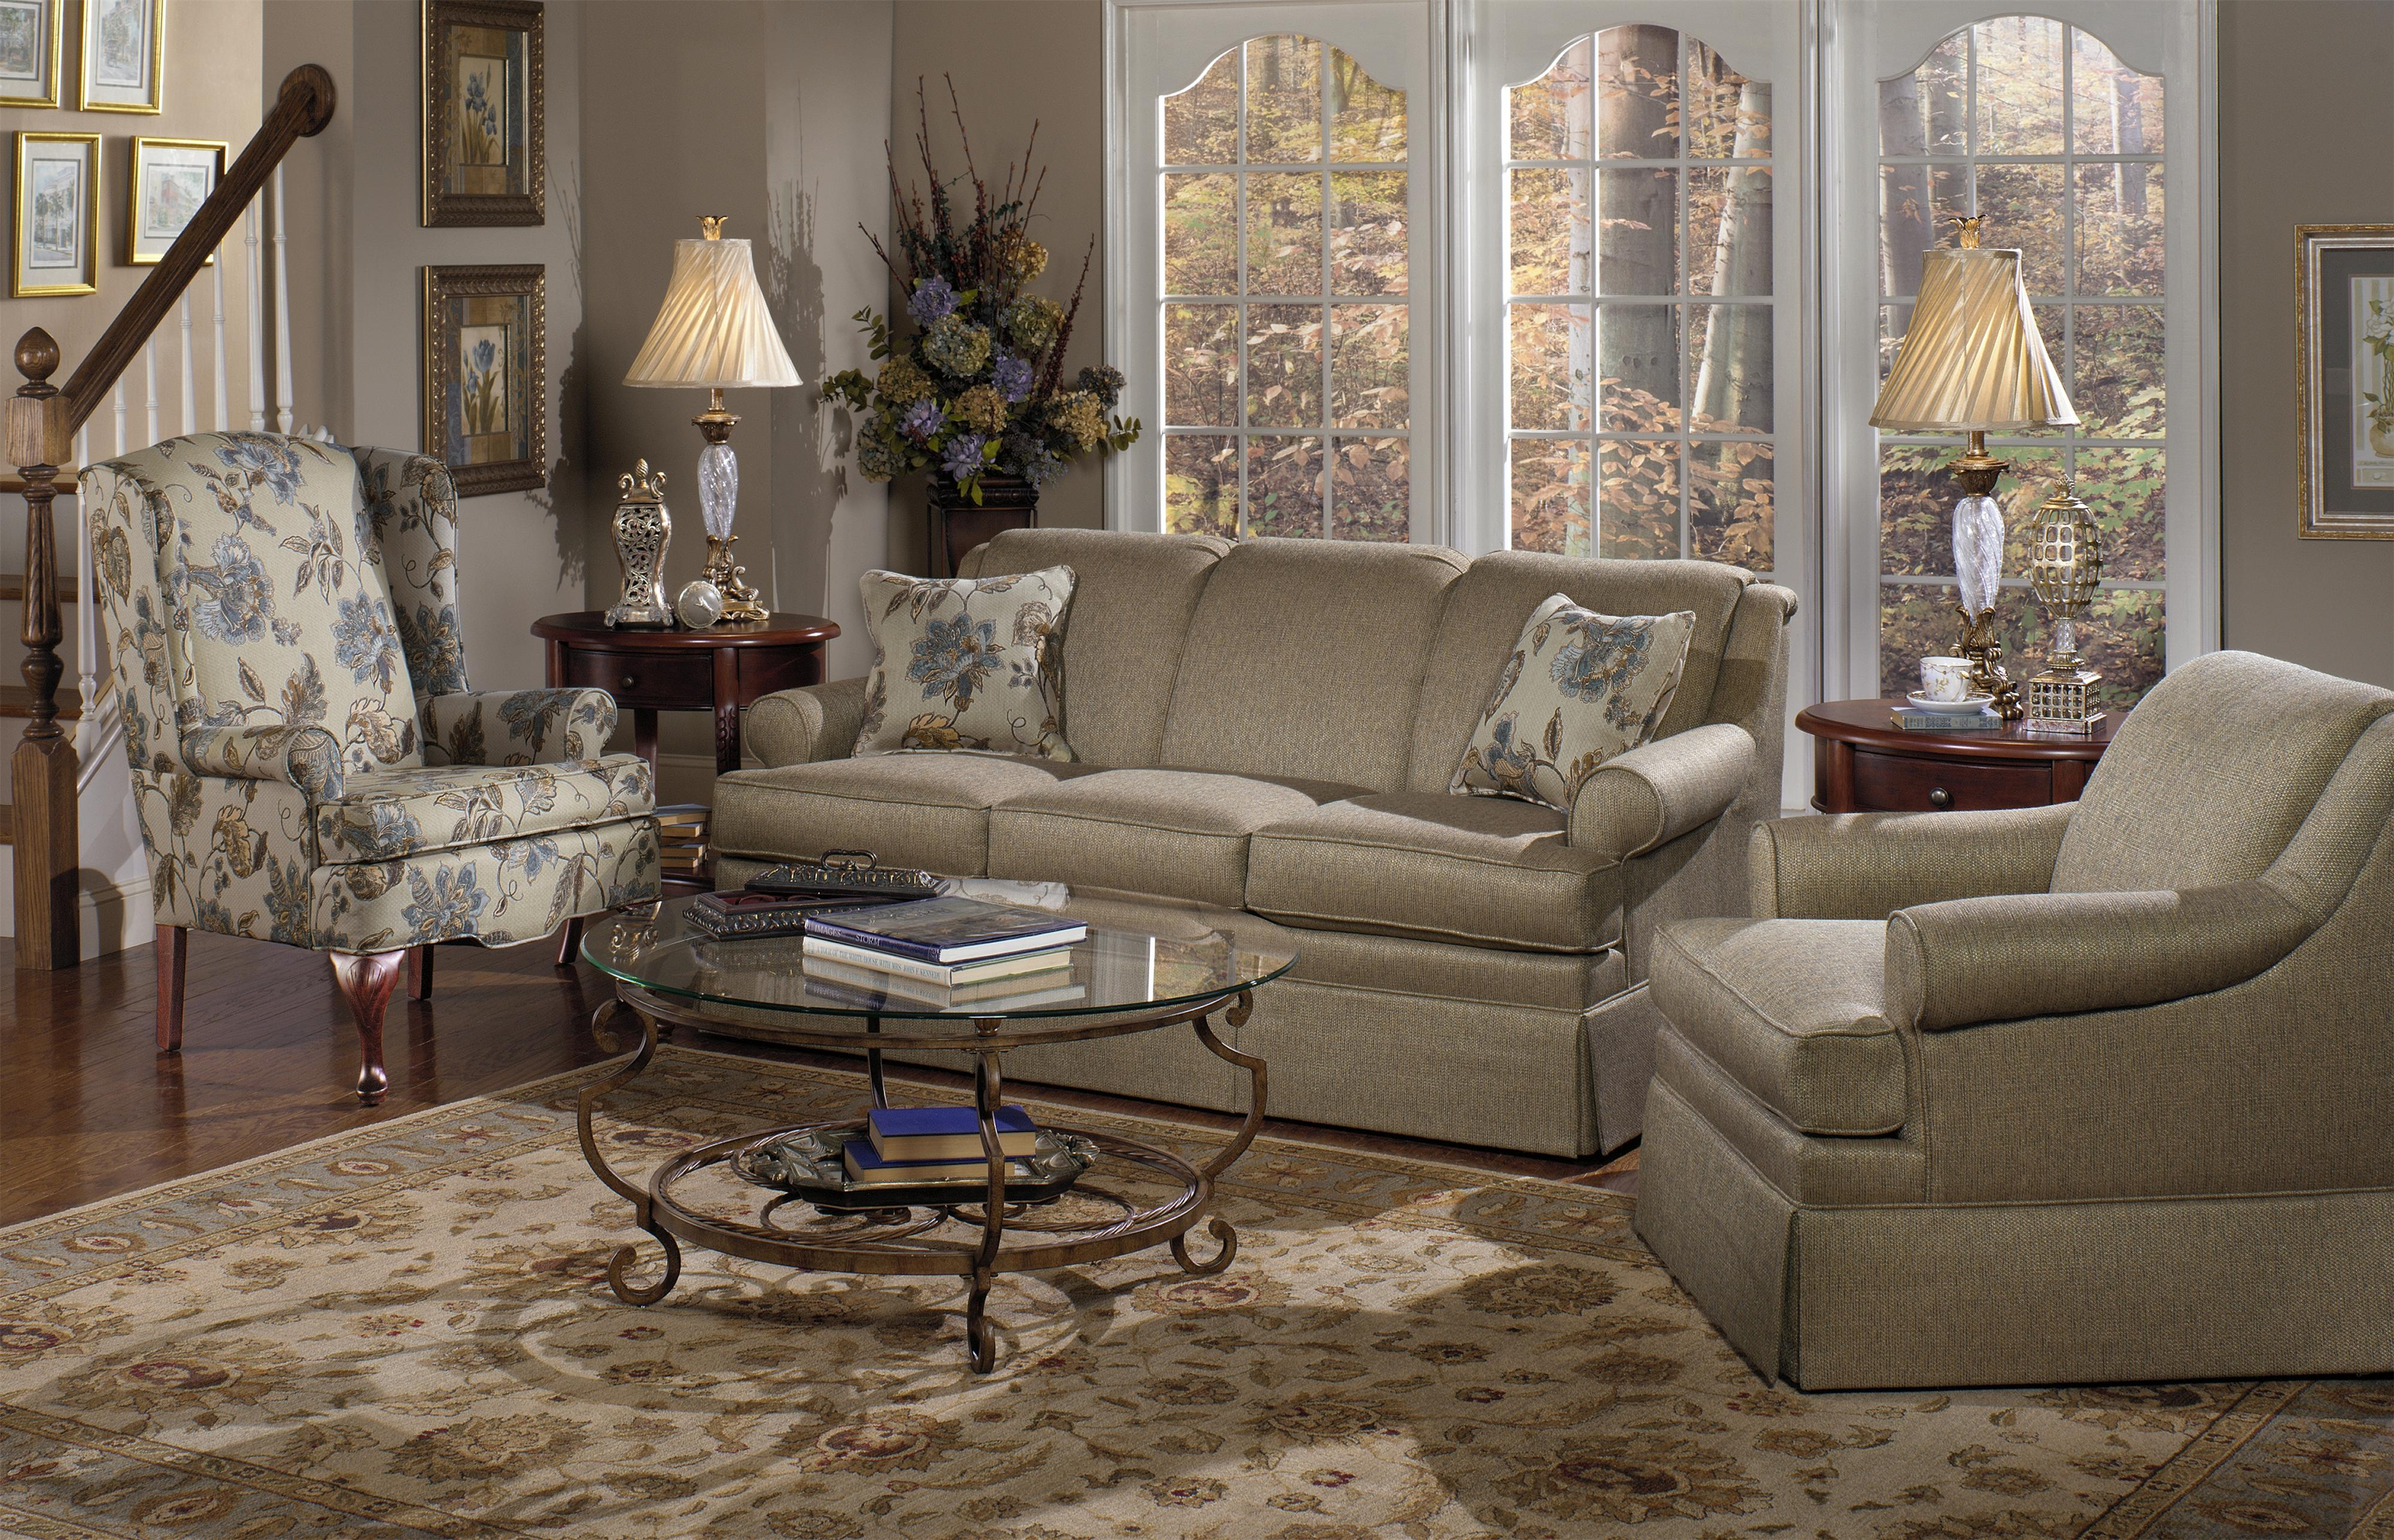 9205 Stationary Living Room Group by Craftmaster at Esprit Decor Home Furnishings